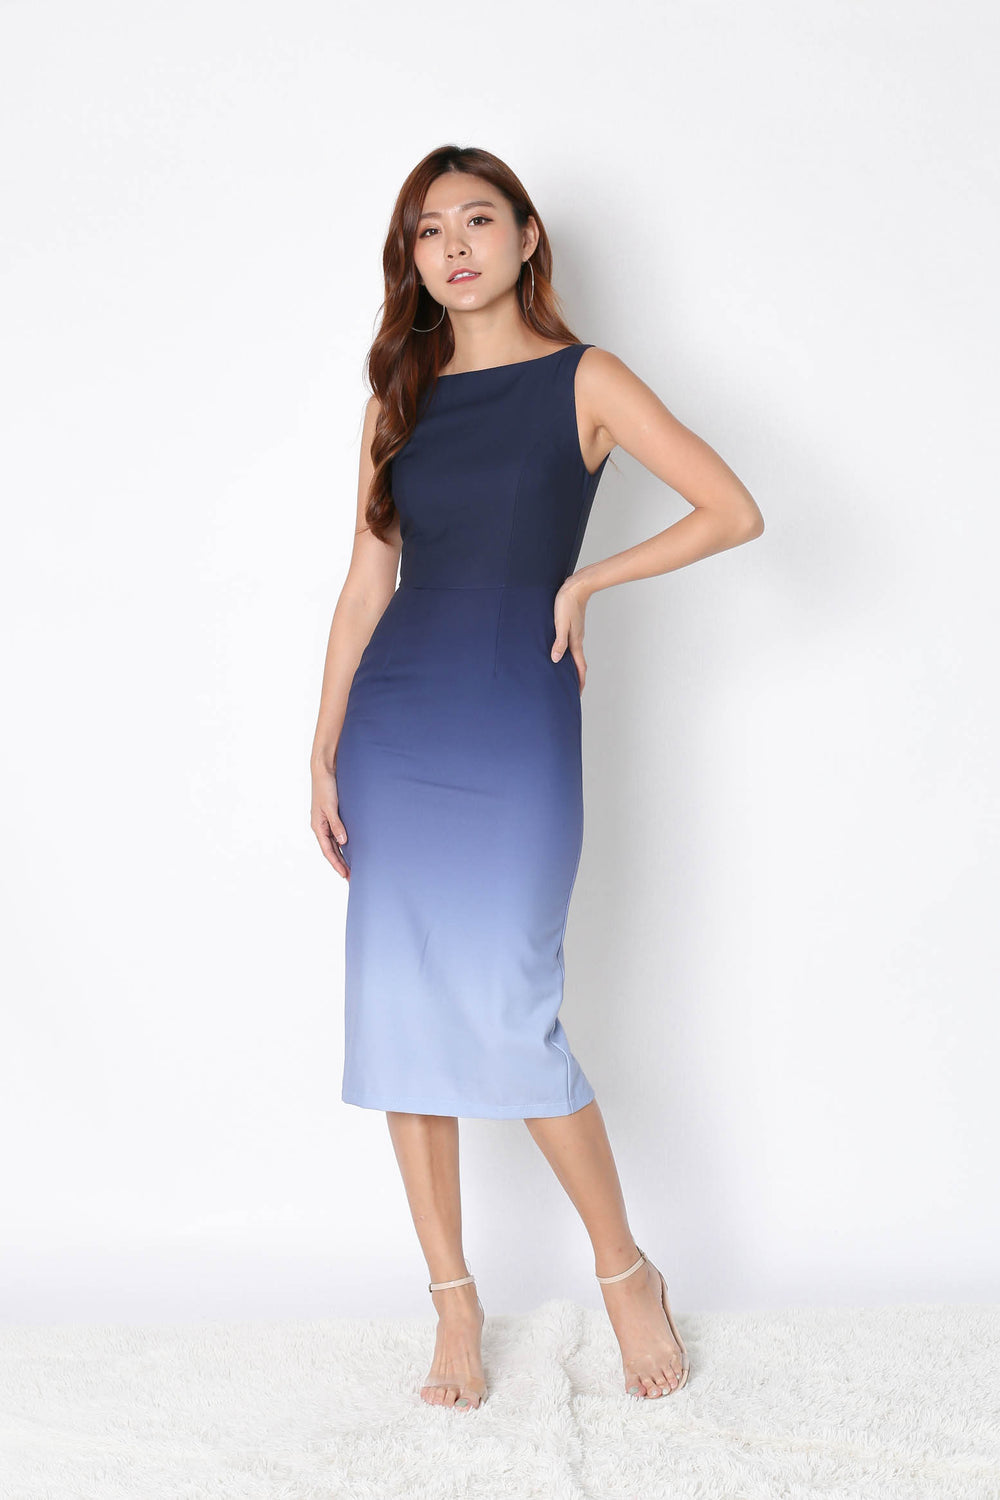 *TPZ* (PREMIUM) CLASSIC BODYCON MIDI OMBRE DRESS (NAVY/ GREY)